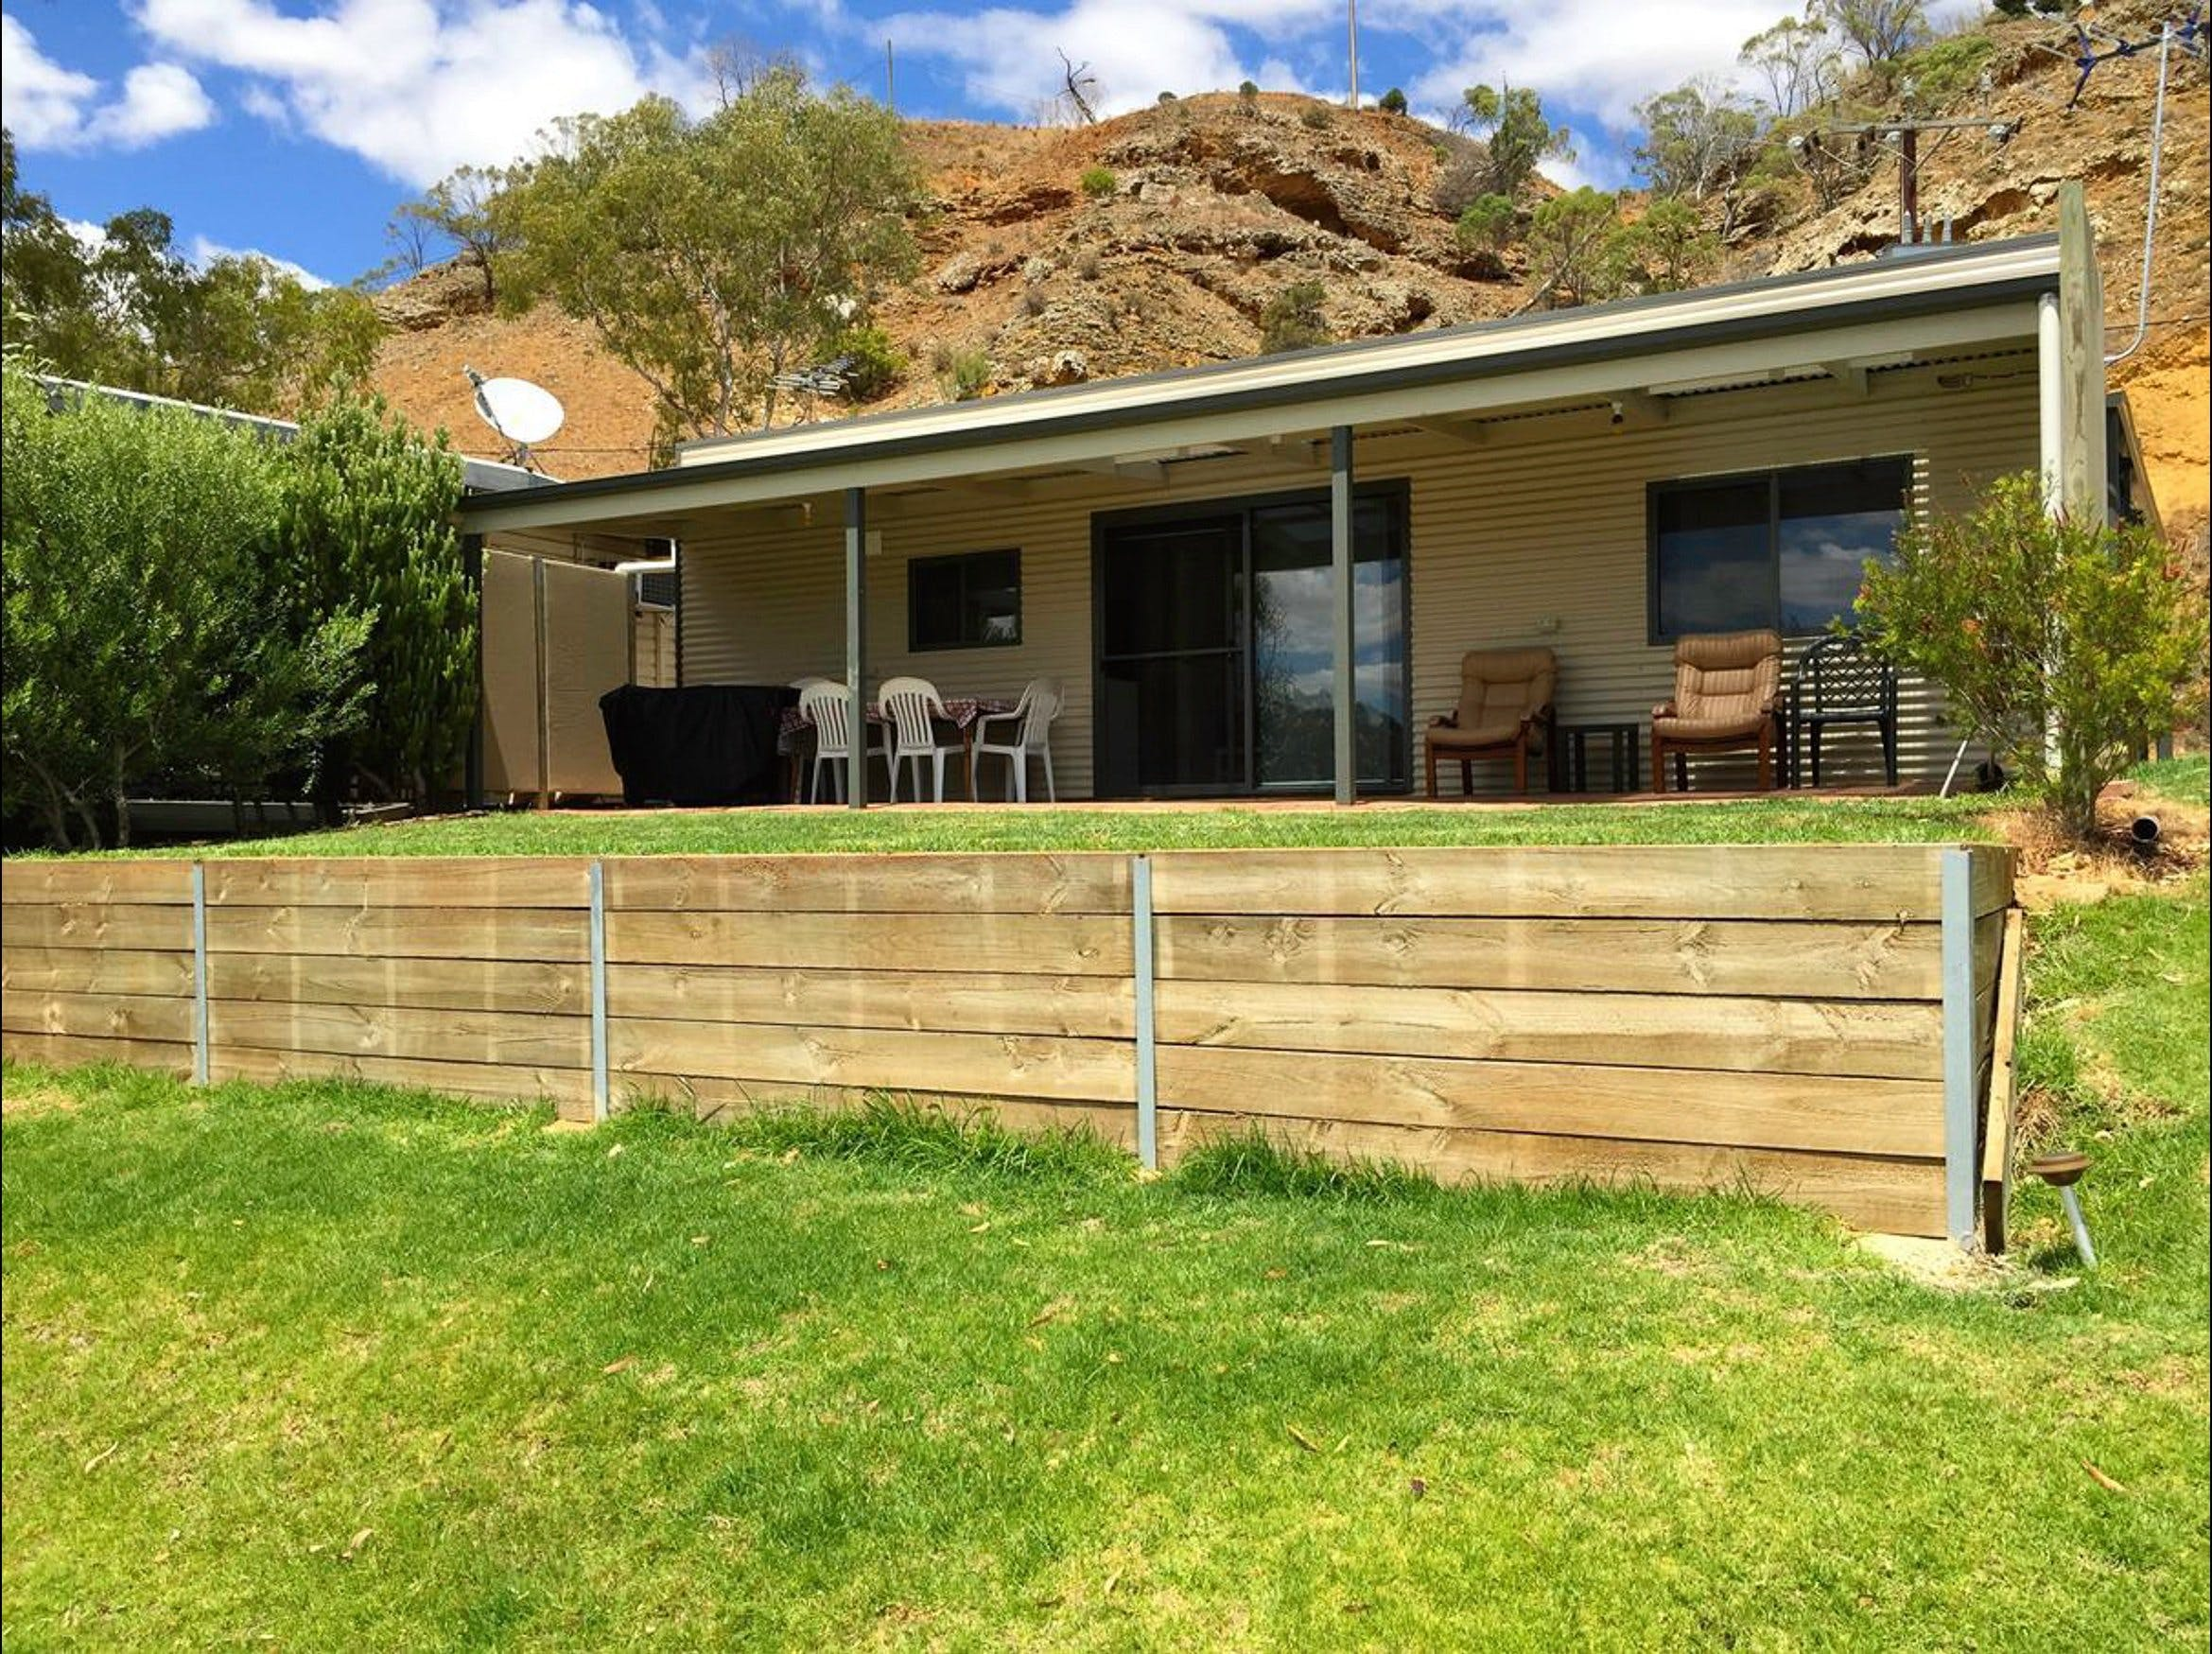 38 Greenbanks drive Sunny Banks- River Shack Rentals - Mount Gambier Accommodation